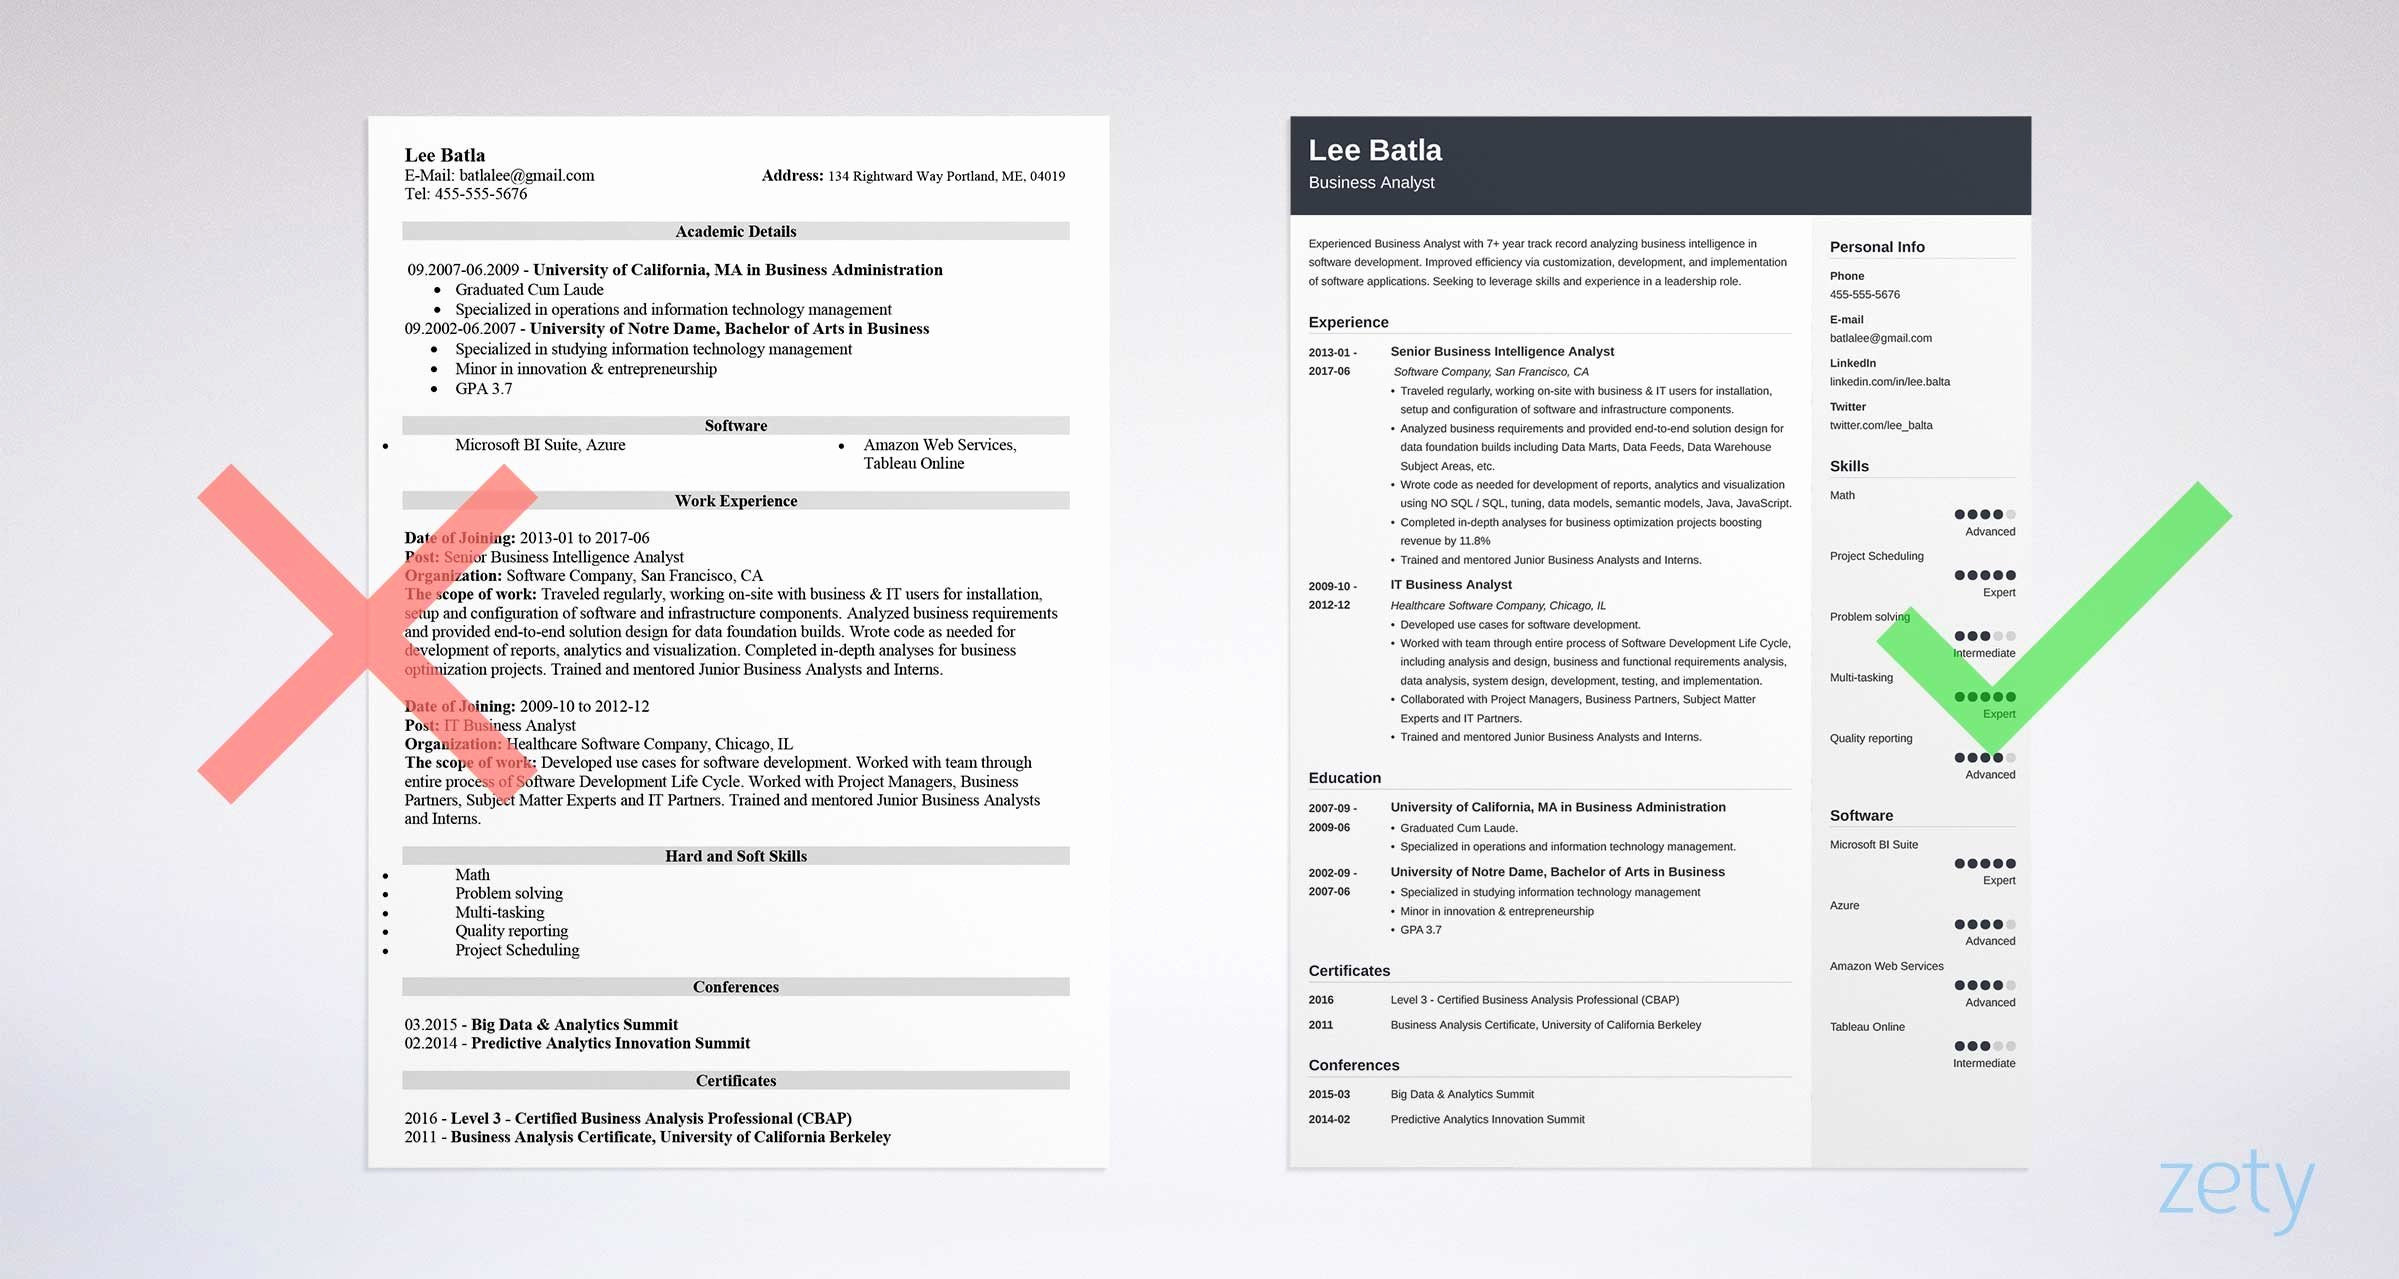 Business Analyst Resume Examples New Business Analyst Resume Sample & Plete Guide [ 20